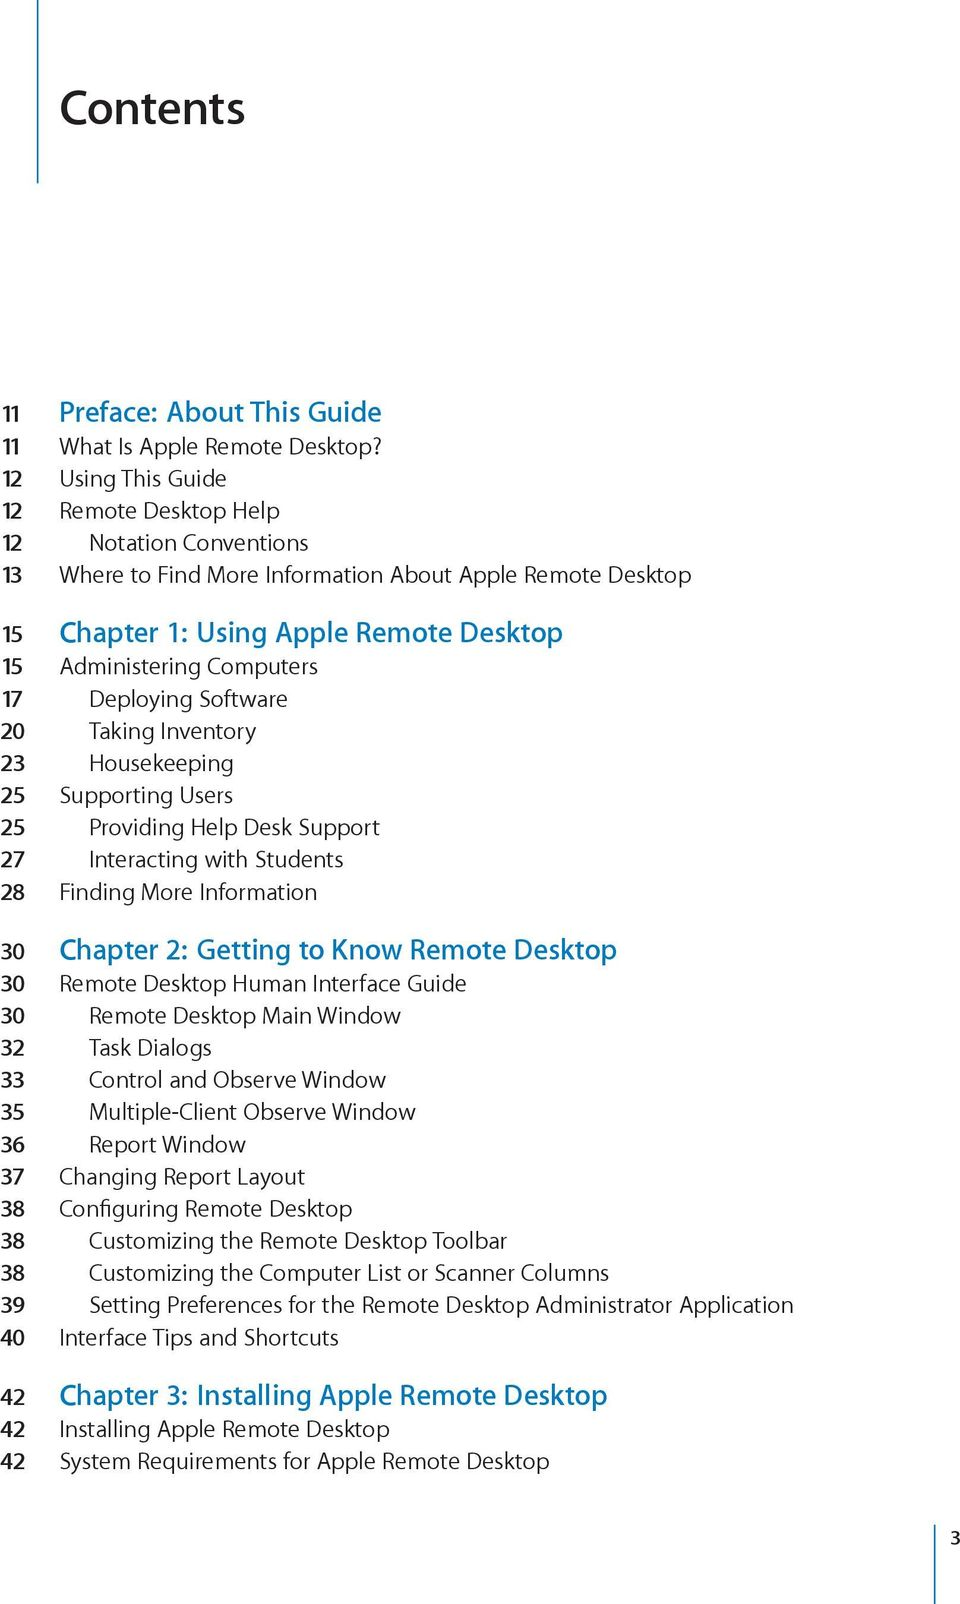 Deploying Software 20 Taking Inventory 23 Housekeeping 25 Supporting Users 25 Providing Help Desk Support 27 Interacting with Students 28 Finding More Information 30 Chapter 2: Getting to Know Remote